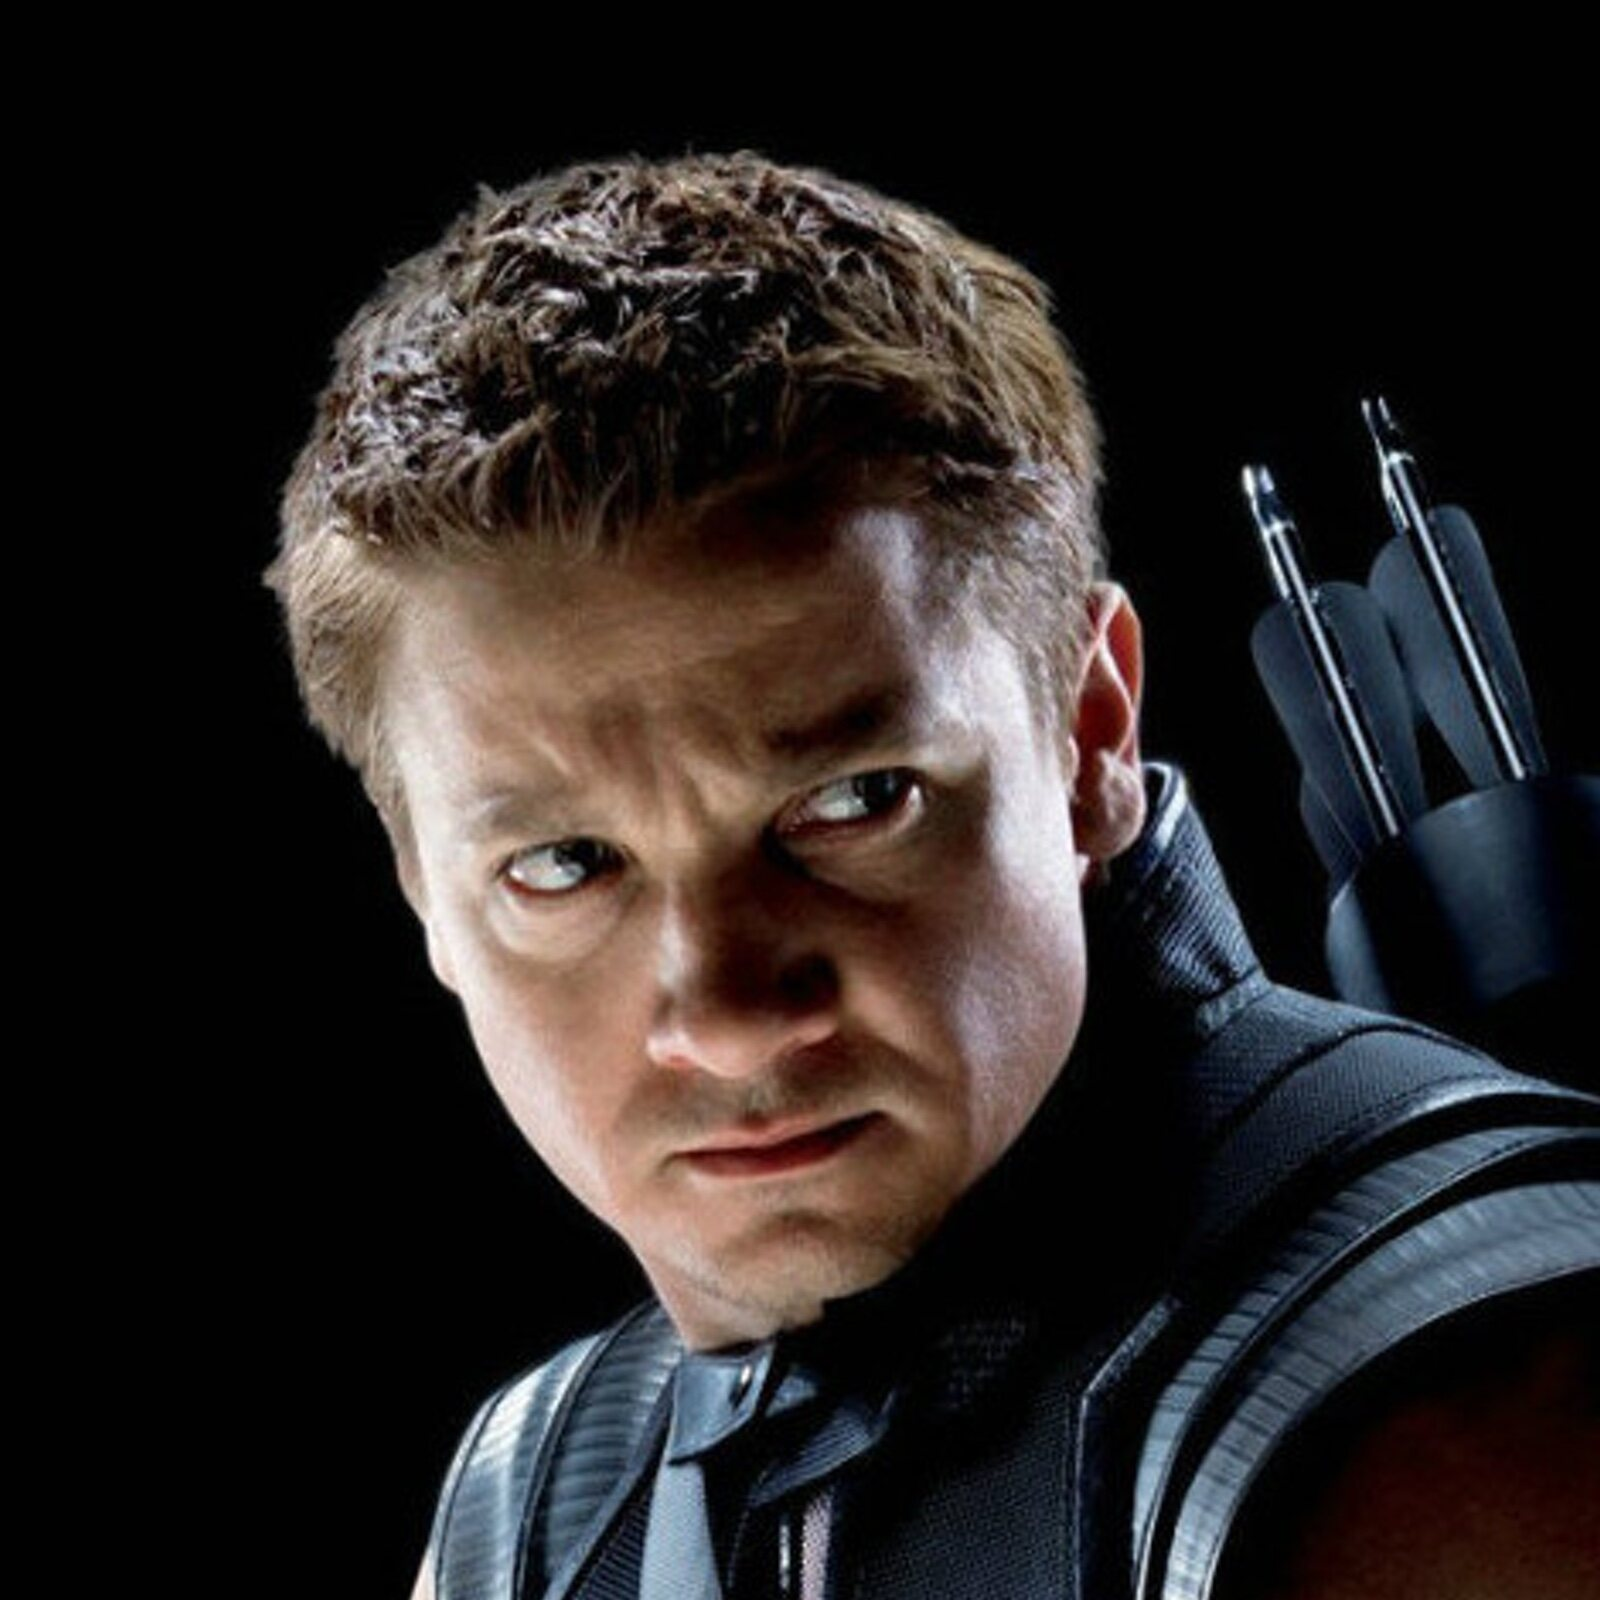 First look at 'Hawkeye', which already has a release date